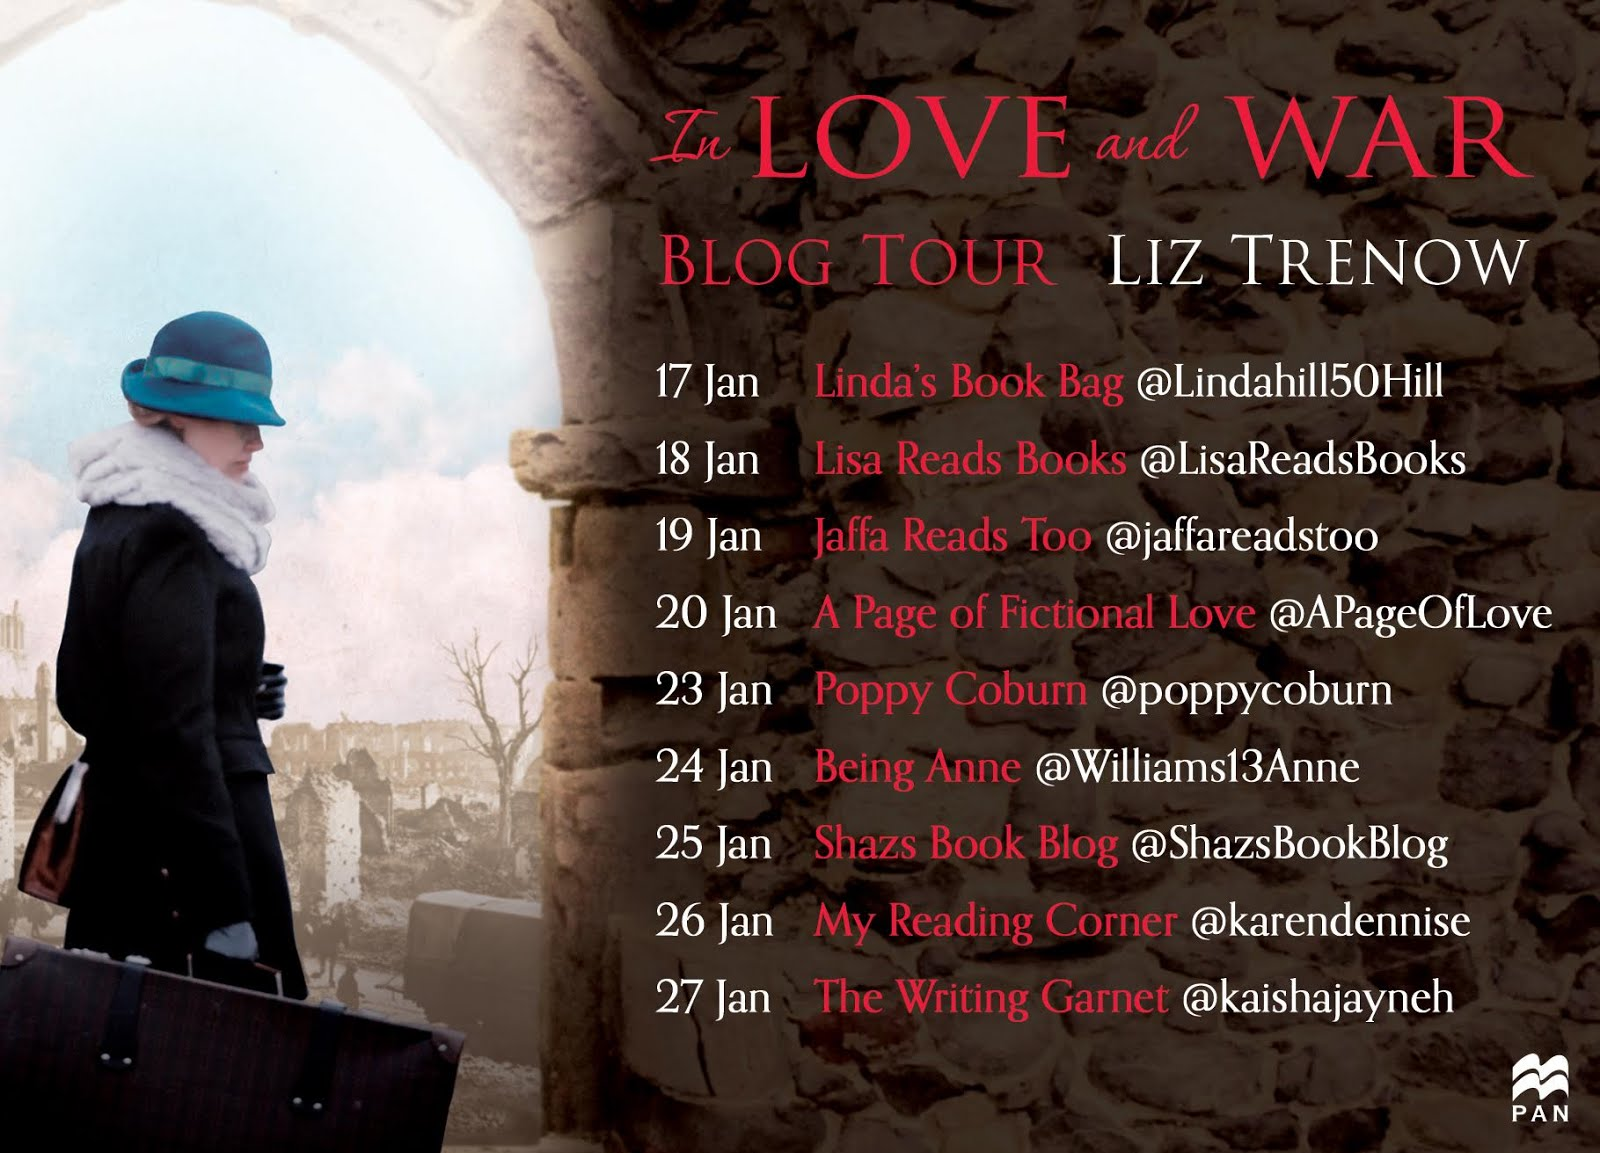 In Love and War Blog Tour 2018